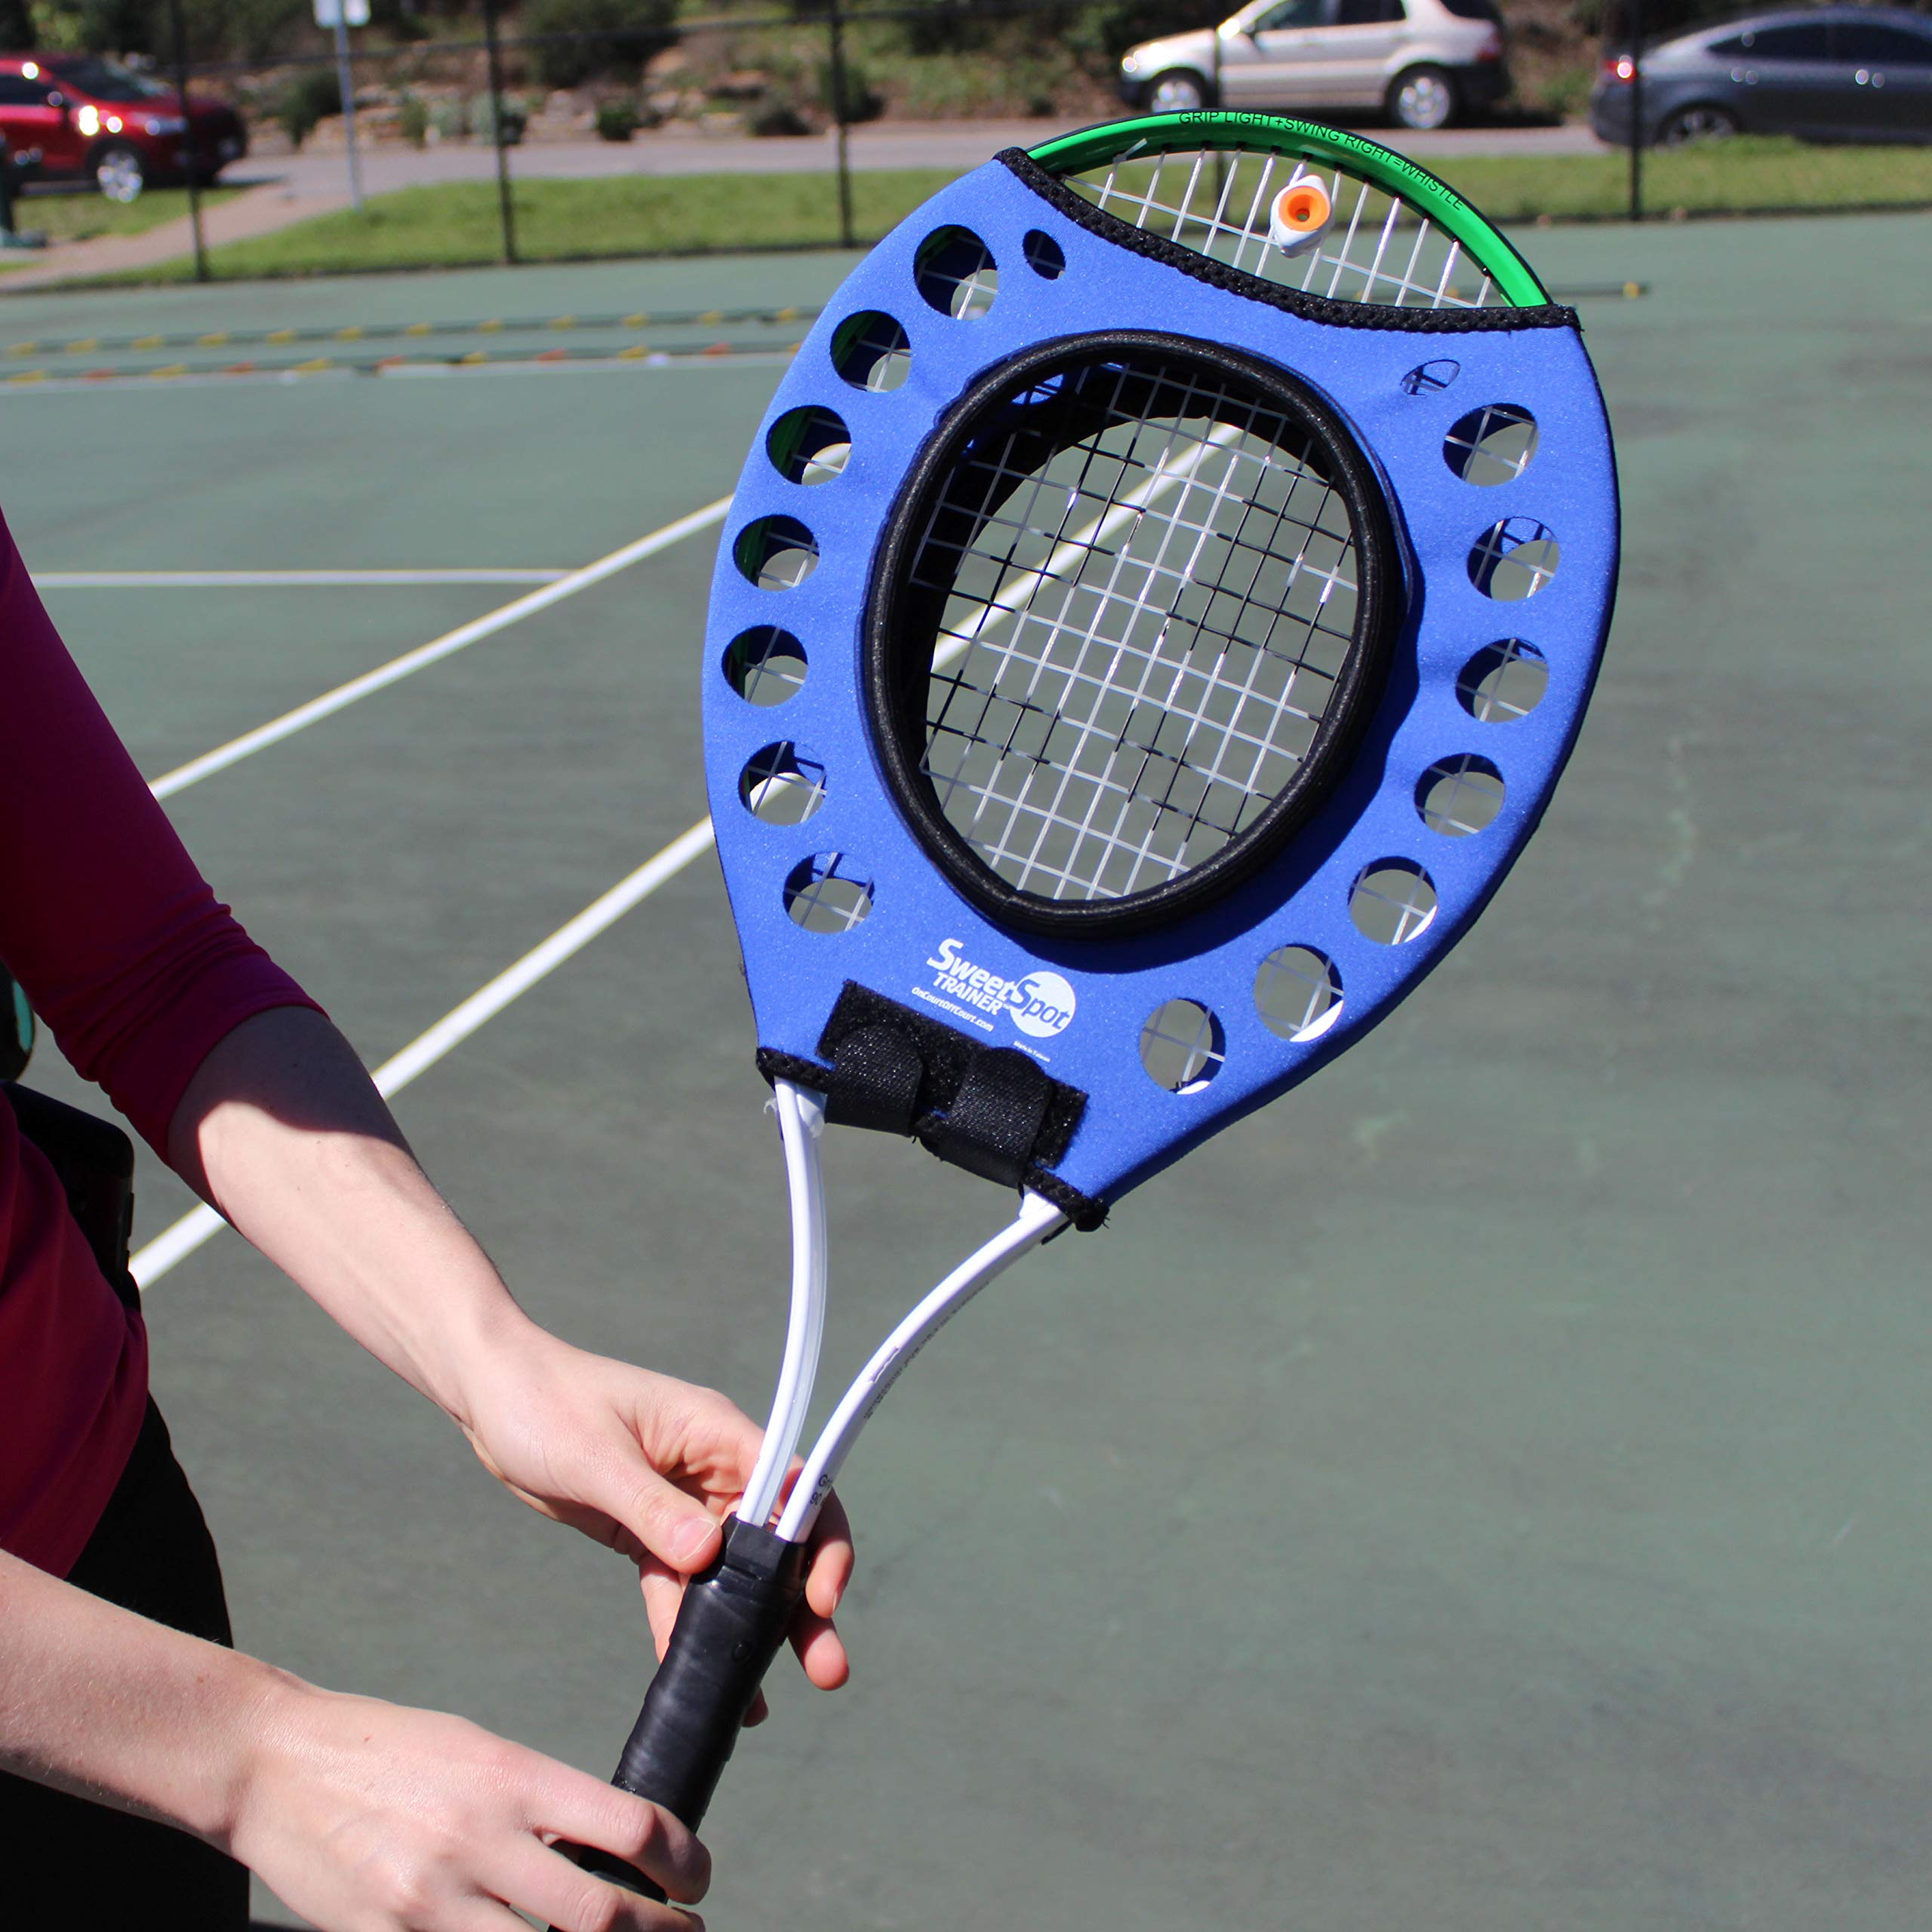 Oncourt Offcourt Sweet Spot Trainer - Learn to Hit The Center of Your Racquet/Tennis Training Aid